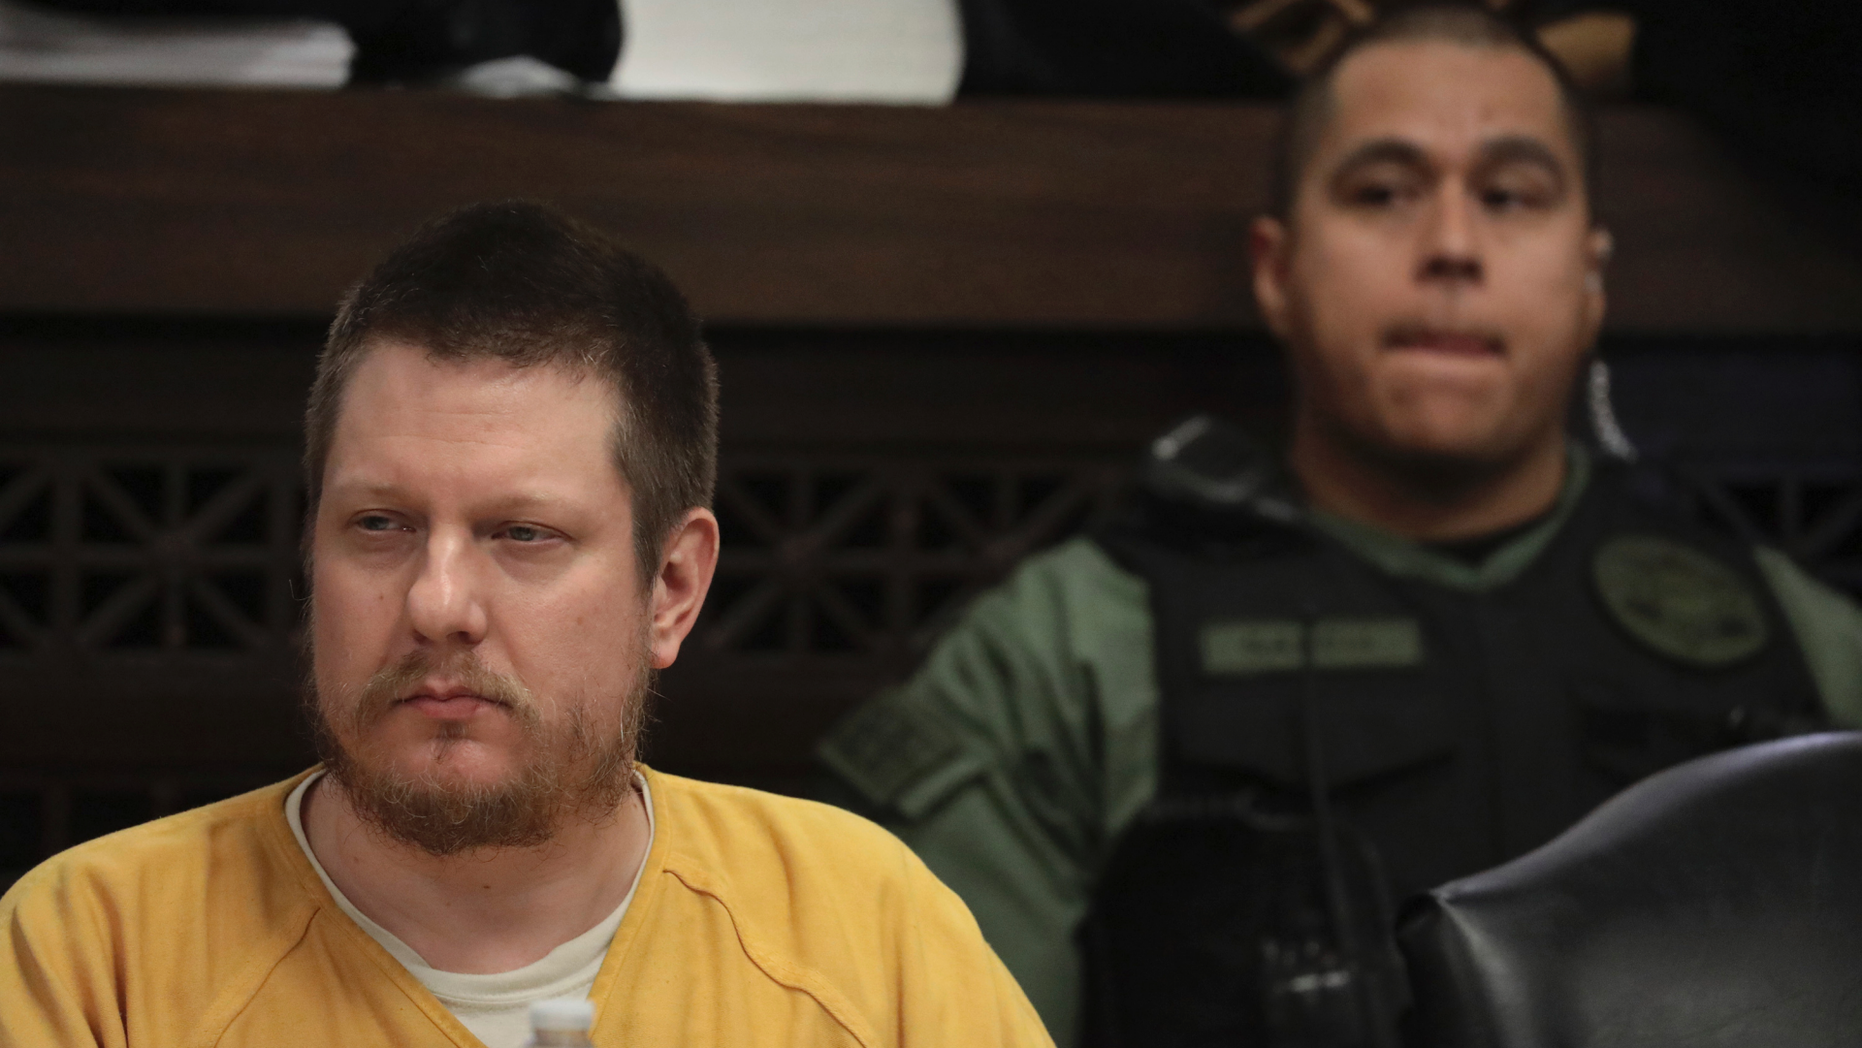 FILE - In this Jan. 18, 2019 file photo, former Chicago police Officer Jason Van Dyke attends his sentencing hearing at the Leighton Criminal Court Building in Chicago, for the 2014 shooting of Laquan McDonald. Illinois' attorney general is holding a news conference with the prosecutor who won a conviction against the white Chicago police officer who killed black teenager Laquan McDonald. Neither Attorney General Kwame Raoul nor Kane County State's Attorney Joseph McMahon have said what Monday's news conference is about. It comes after Raoul's office signaled that it may ask the Illinois Supreme Court to intervene over what prosecutors see as a too lenient sentence for Jason Van Dyke. (Antonio Perez/Chicago Tribune via AP, Pool, File)